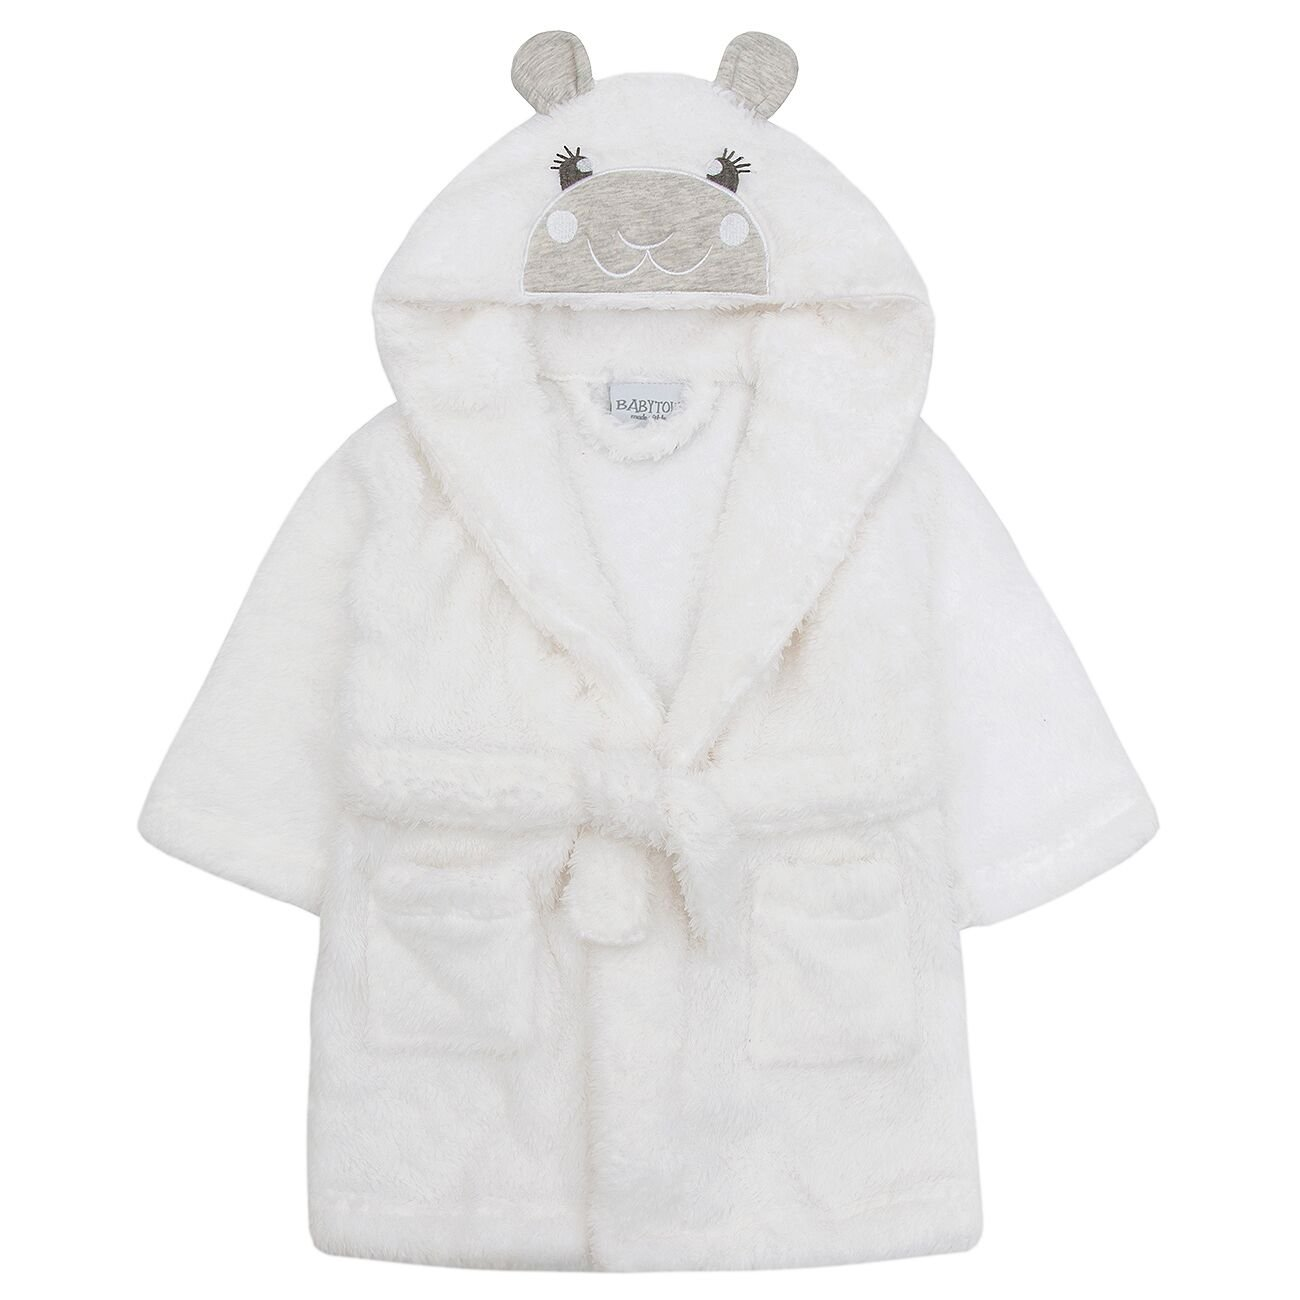 Babytown Snuggle Soft Lamb Robe Dressing Gown White